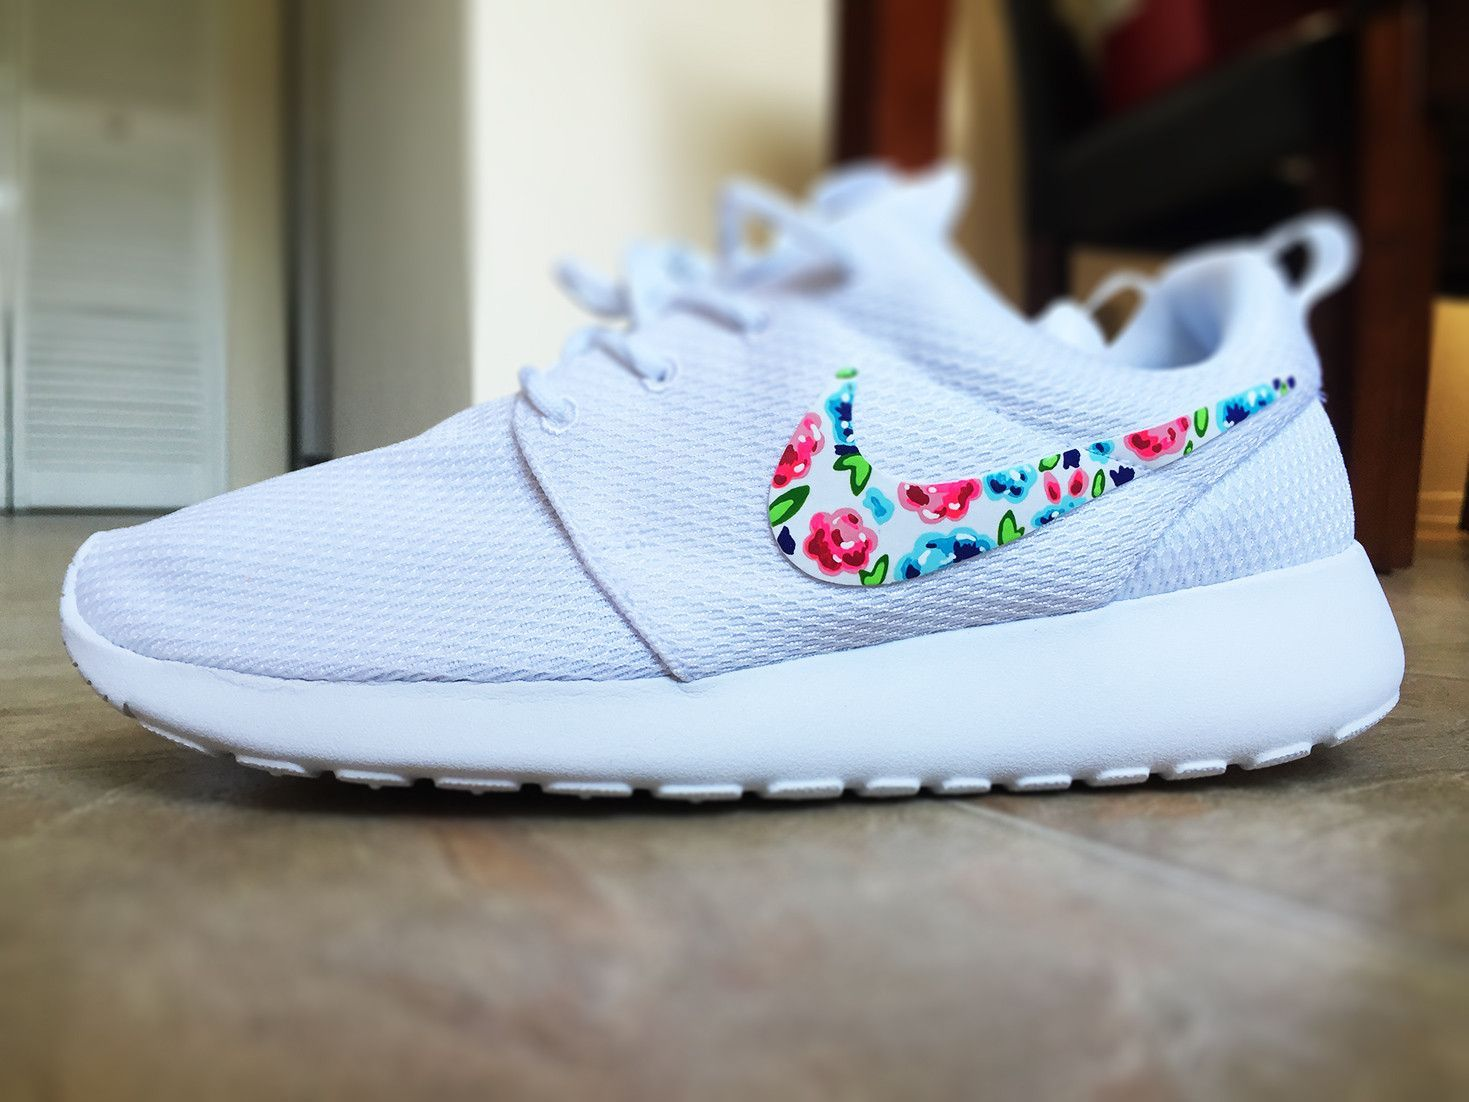 promo code db94b 2fdf9 Womens Custom Nike Roshe Run Floral design, Custom Floral Nike, white with  pop of color, cute and trendy